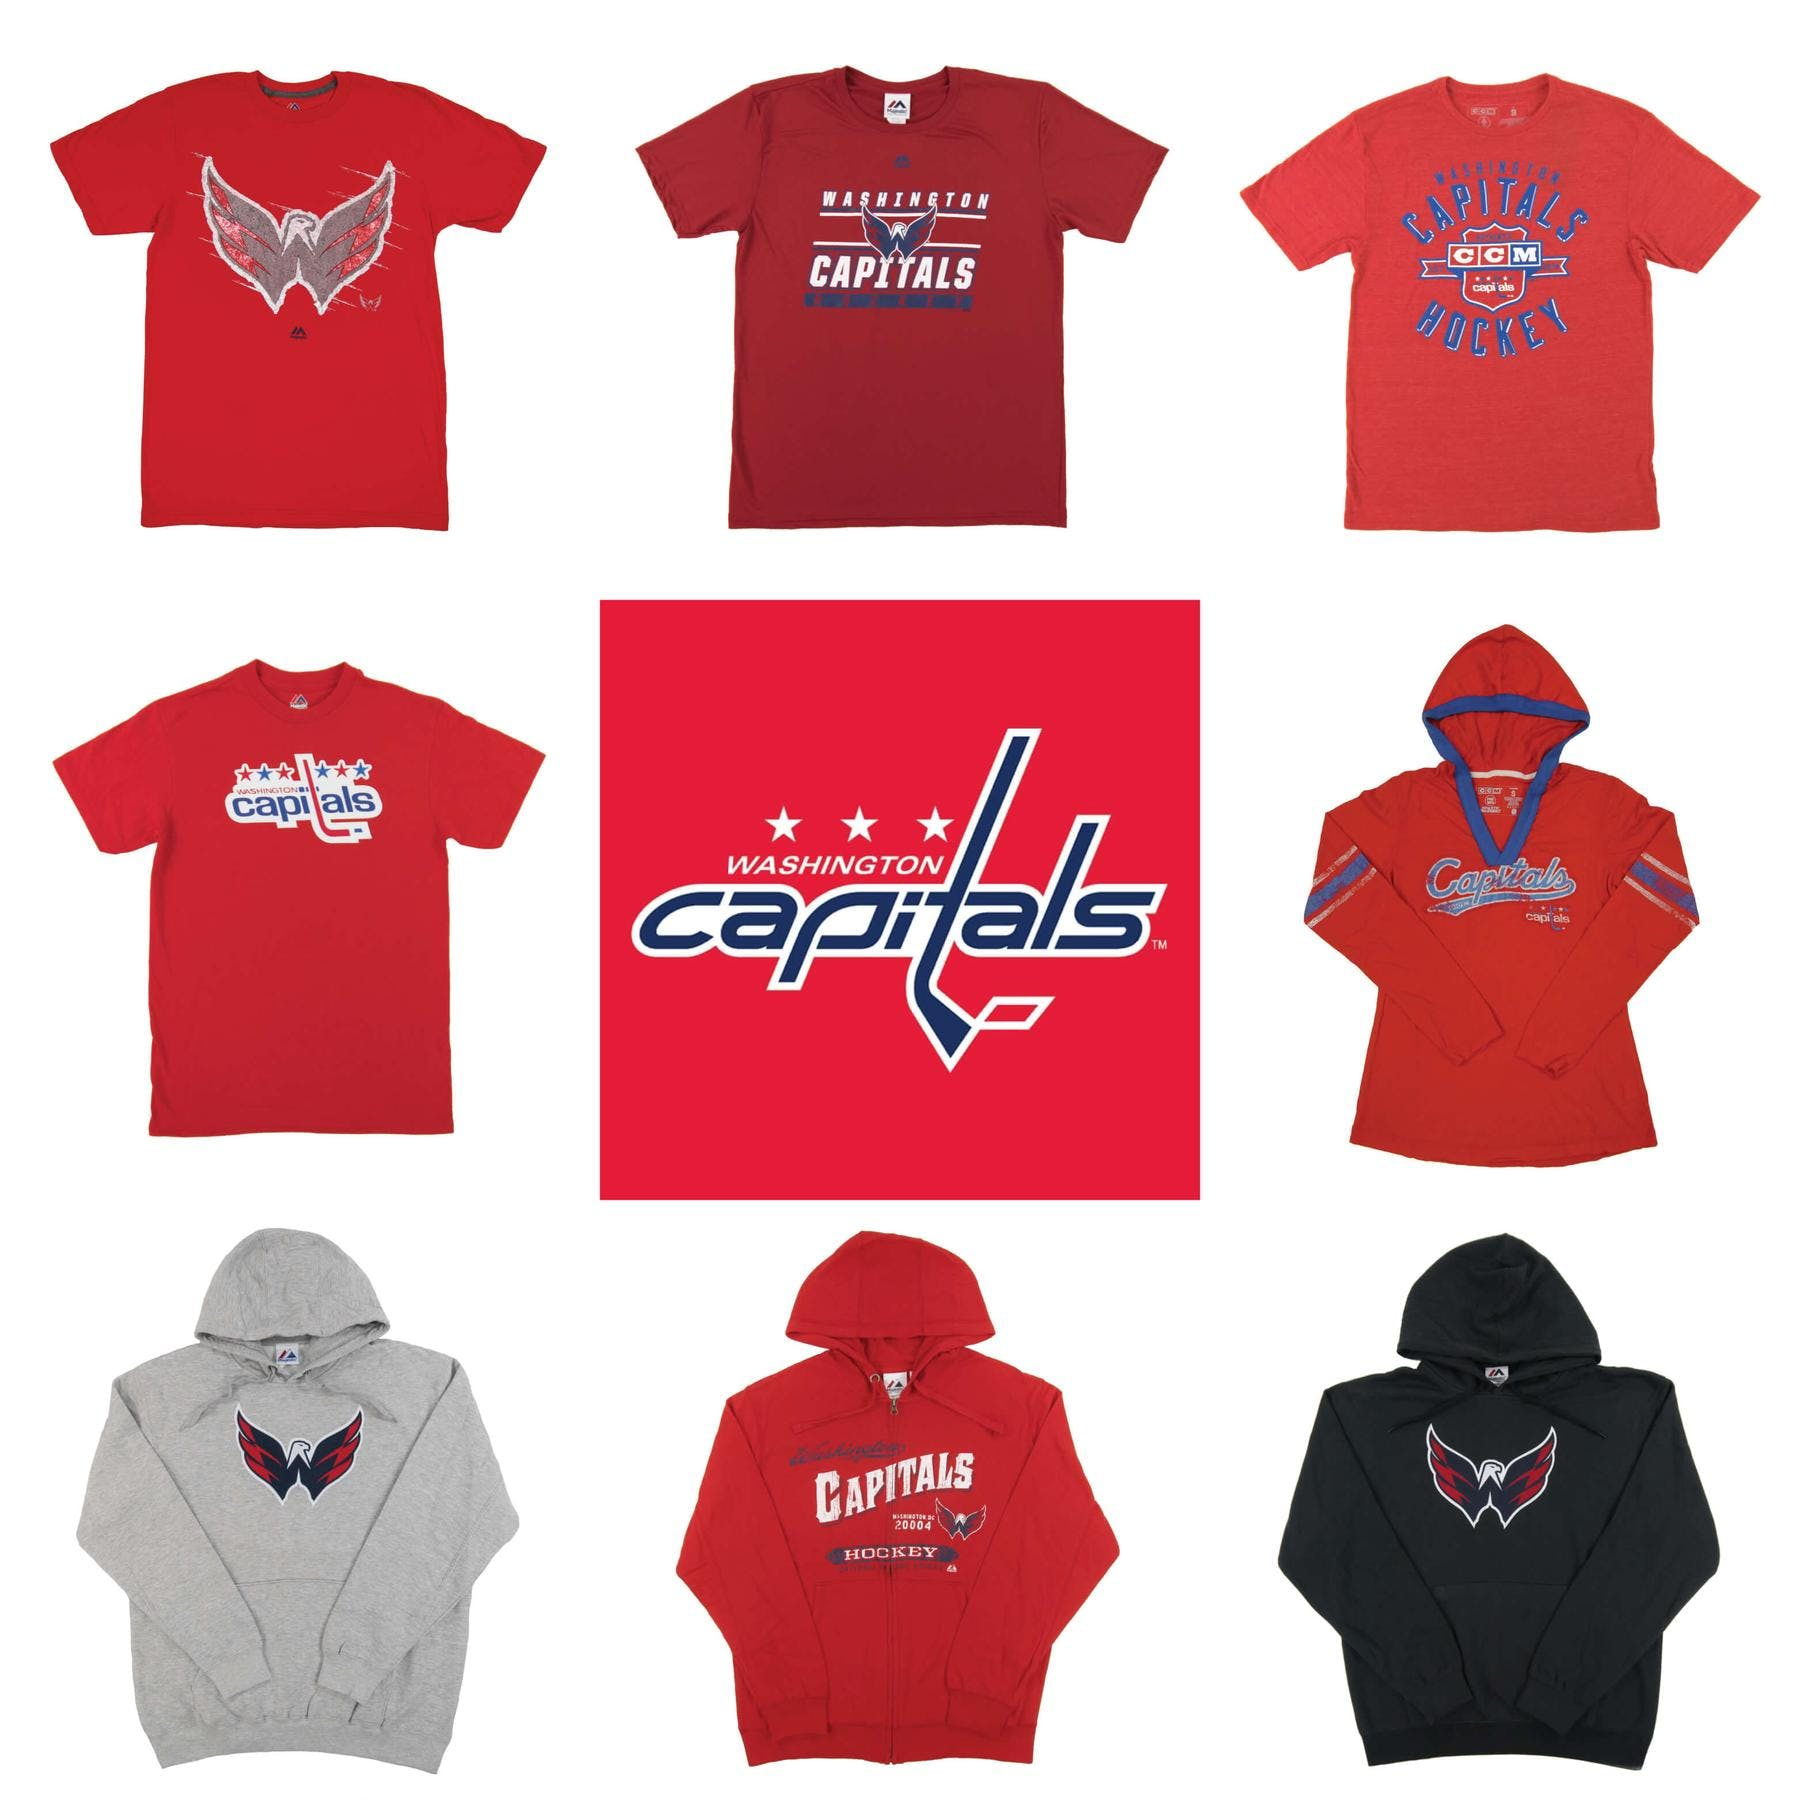 Washington Capitals Premium NHL Apparel Liquidation - 2 c28f166d0d04